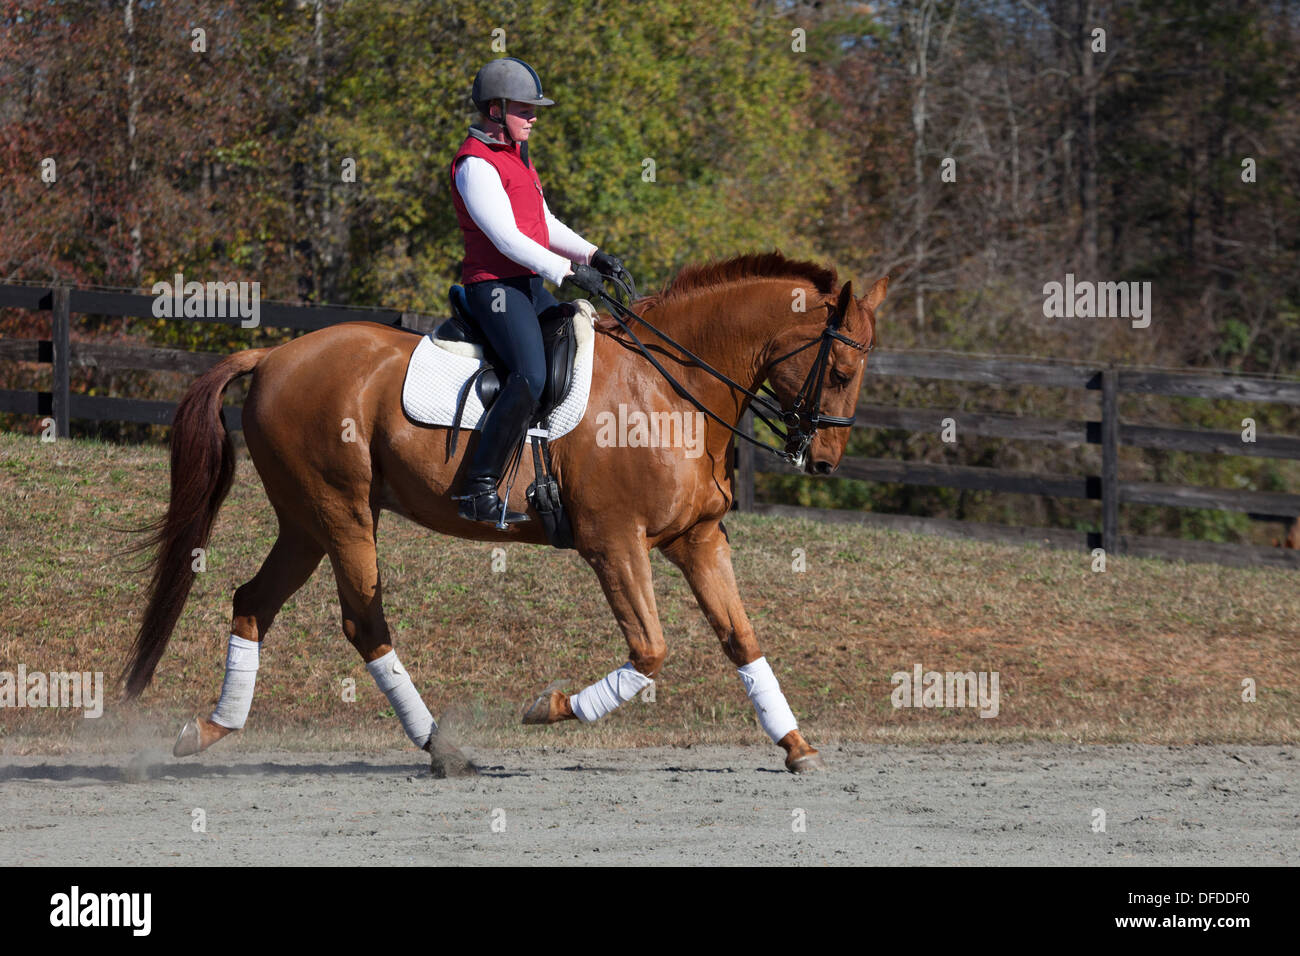 Woman riding dressage horse - Stock Image